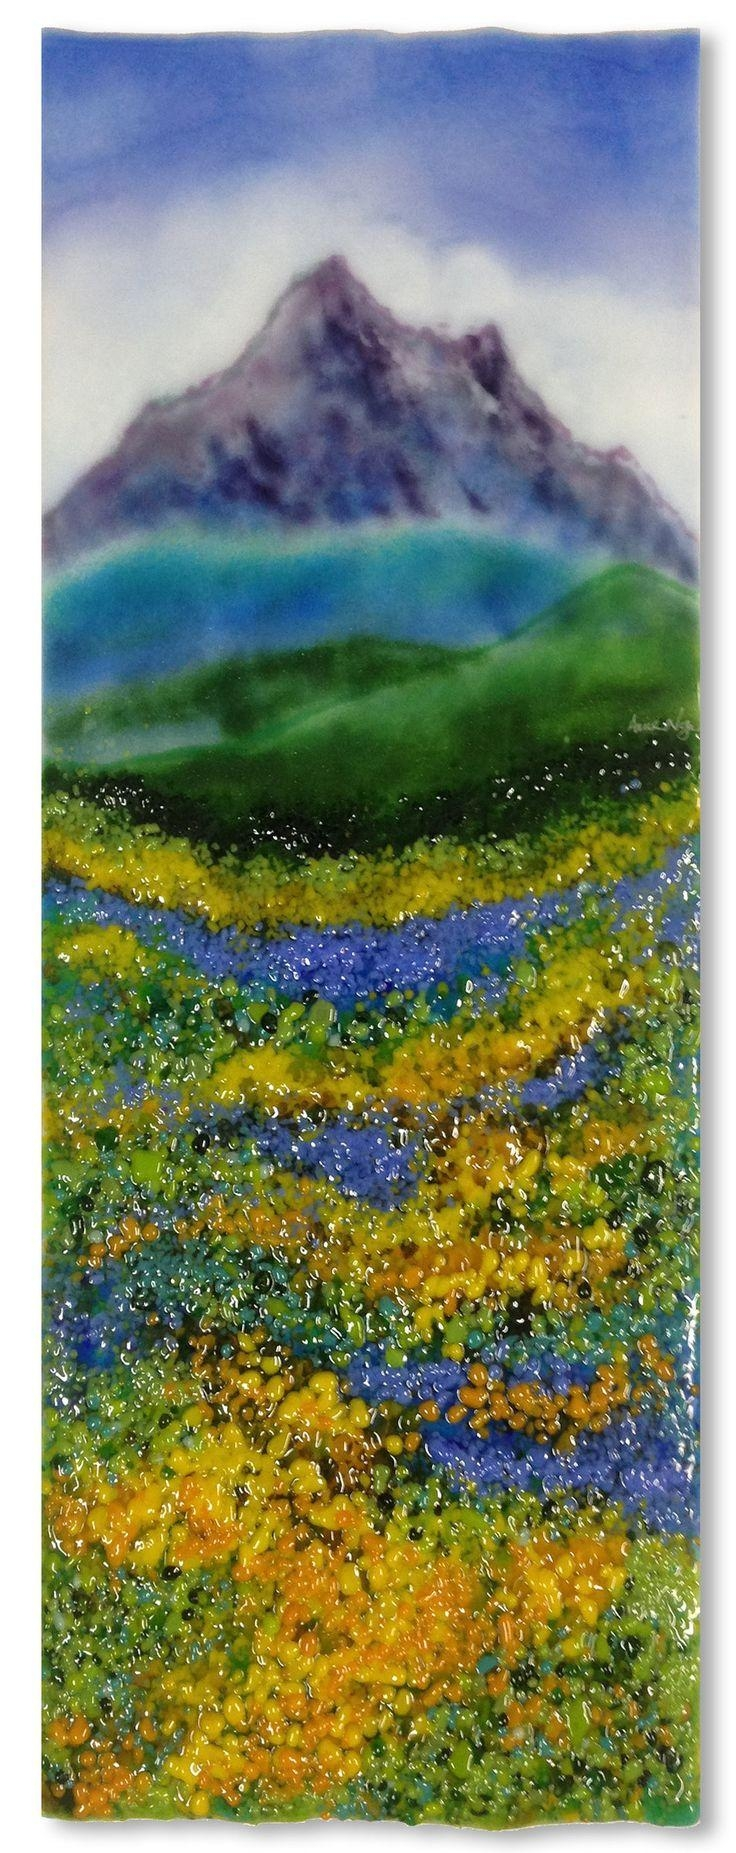 604 Best Glass Fusing Images On Pinterest | Stained Glass, Fused Intended For Fused Glass Wall Art Devon (View 17 of 20)